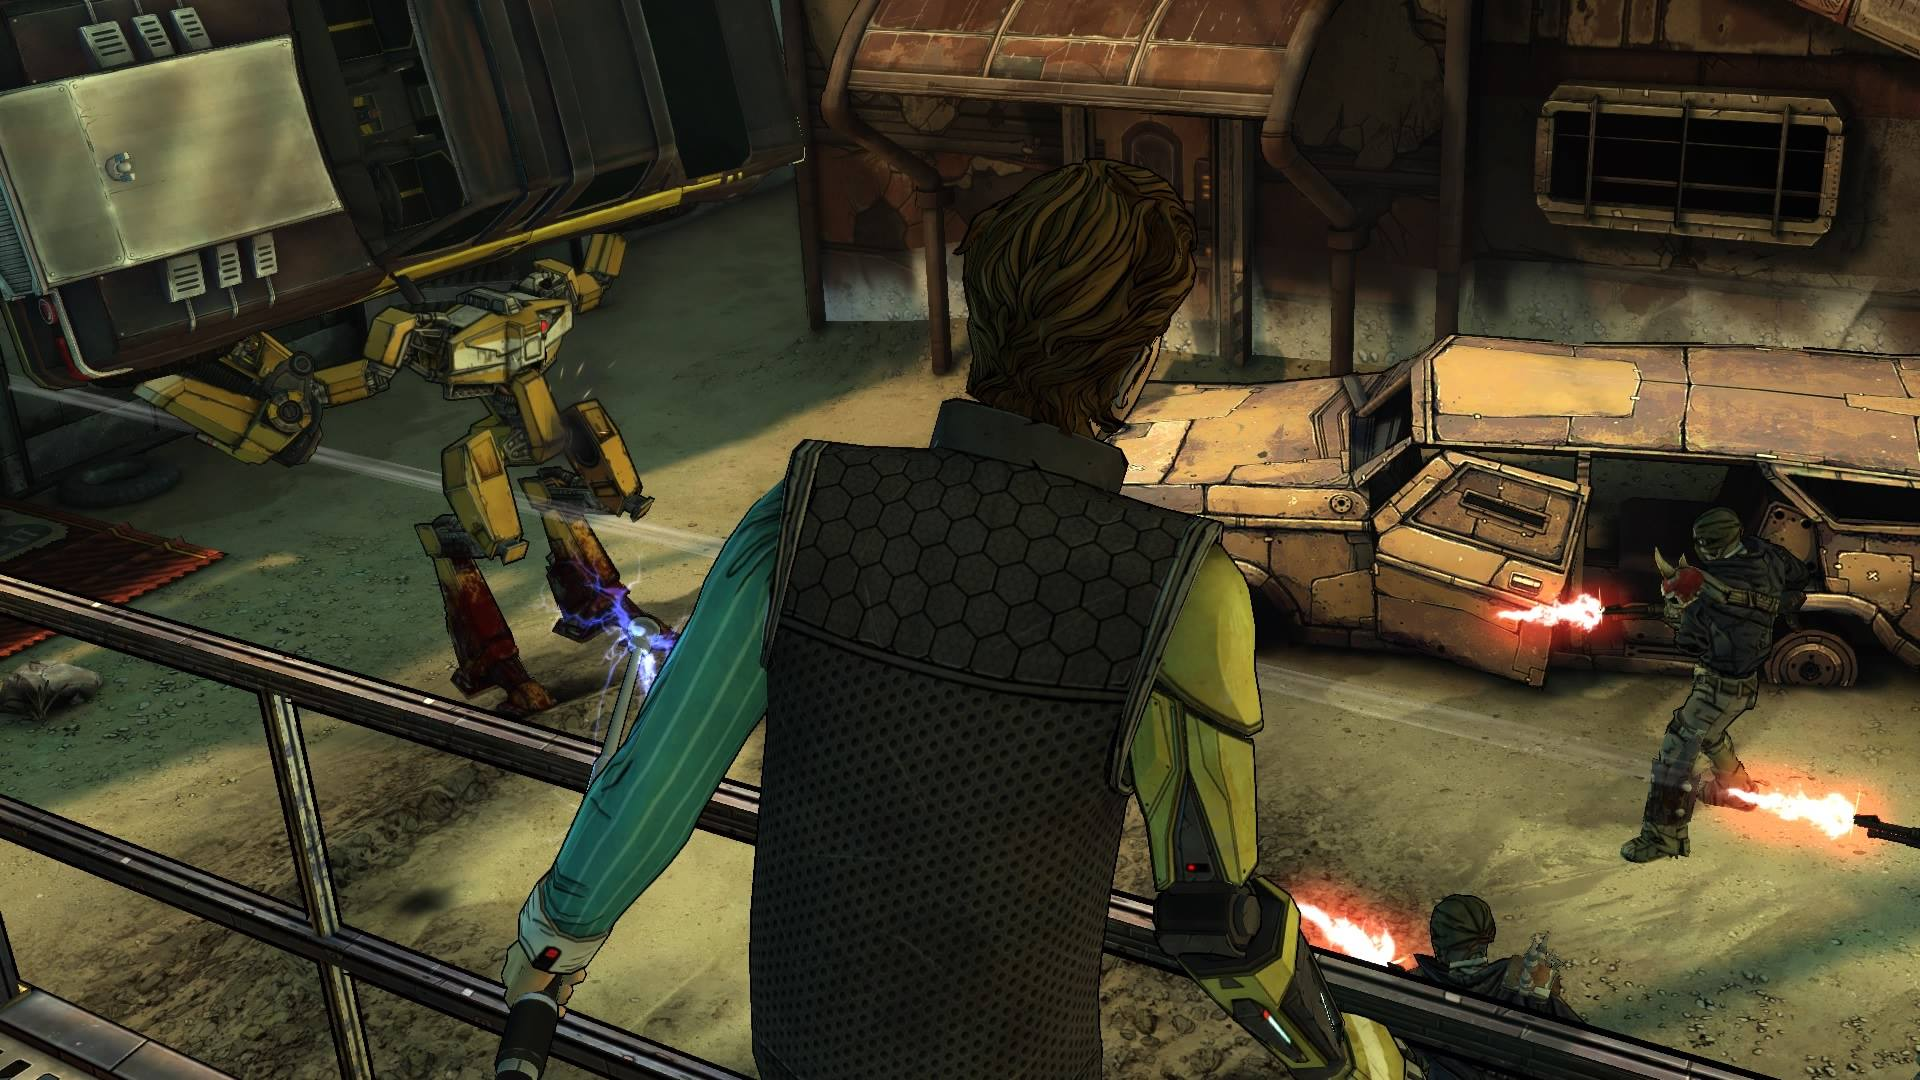 Screenshot from Tales From The Borderlands on PlayStation 4.